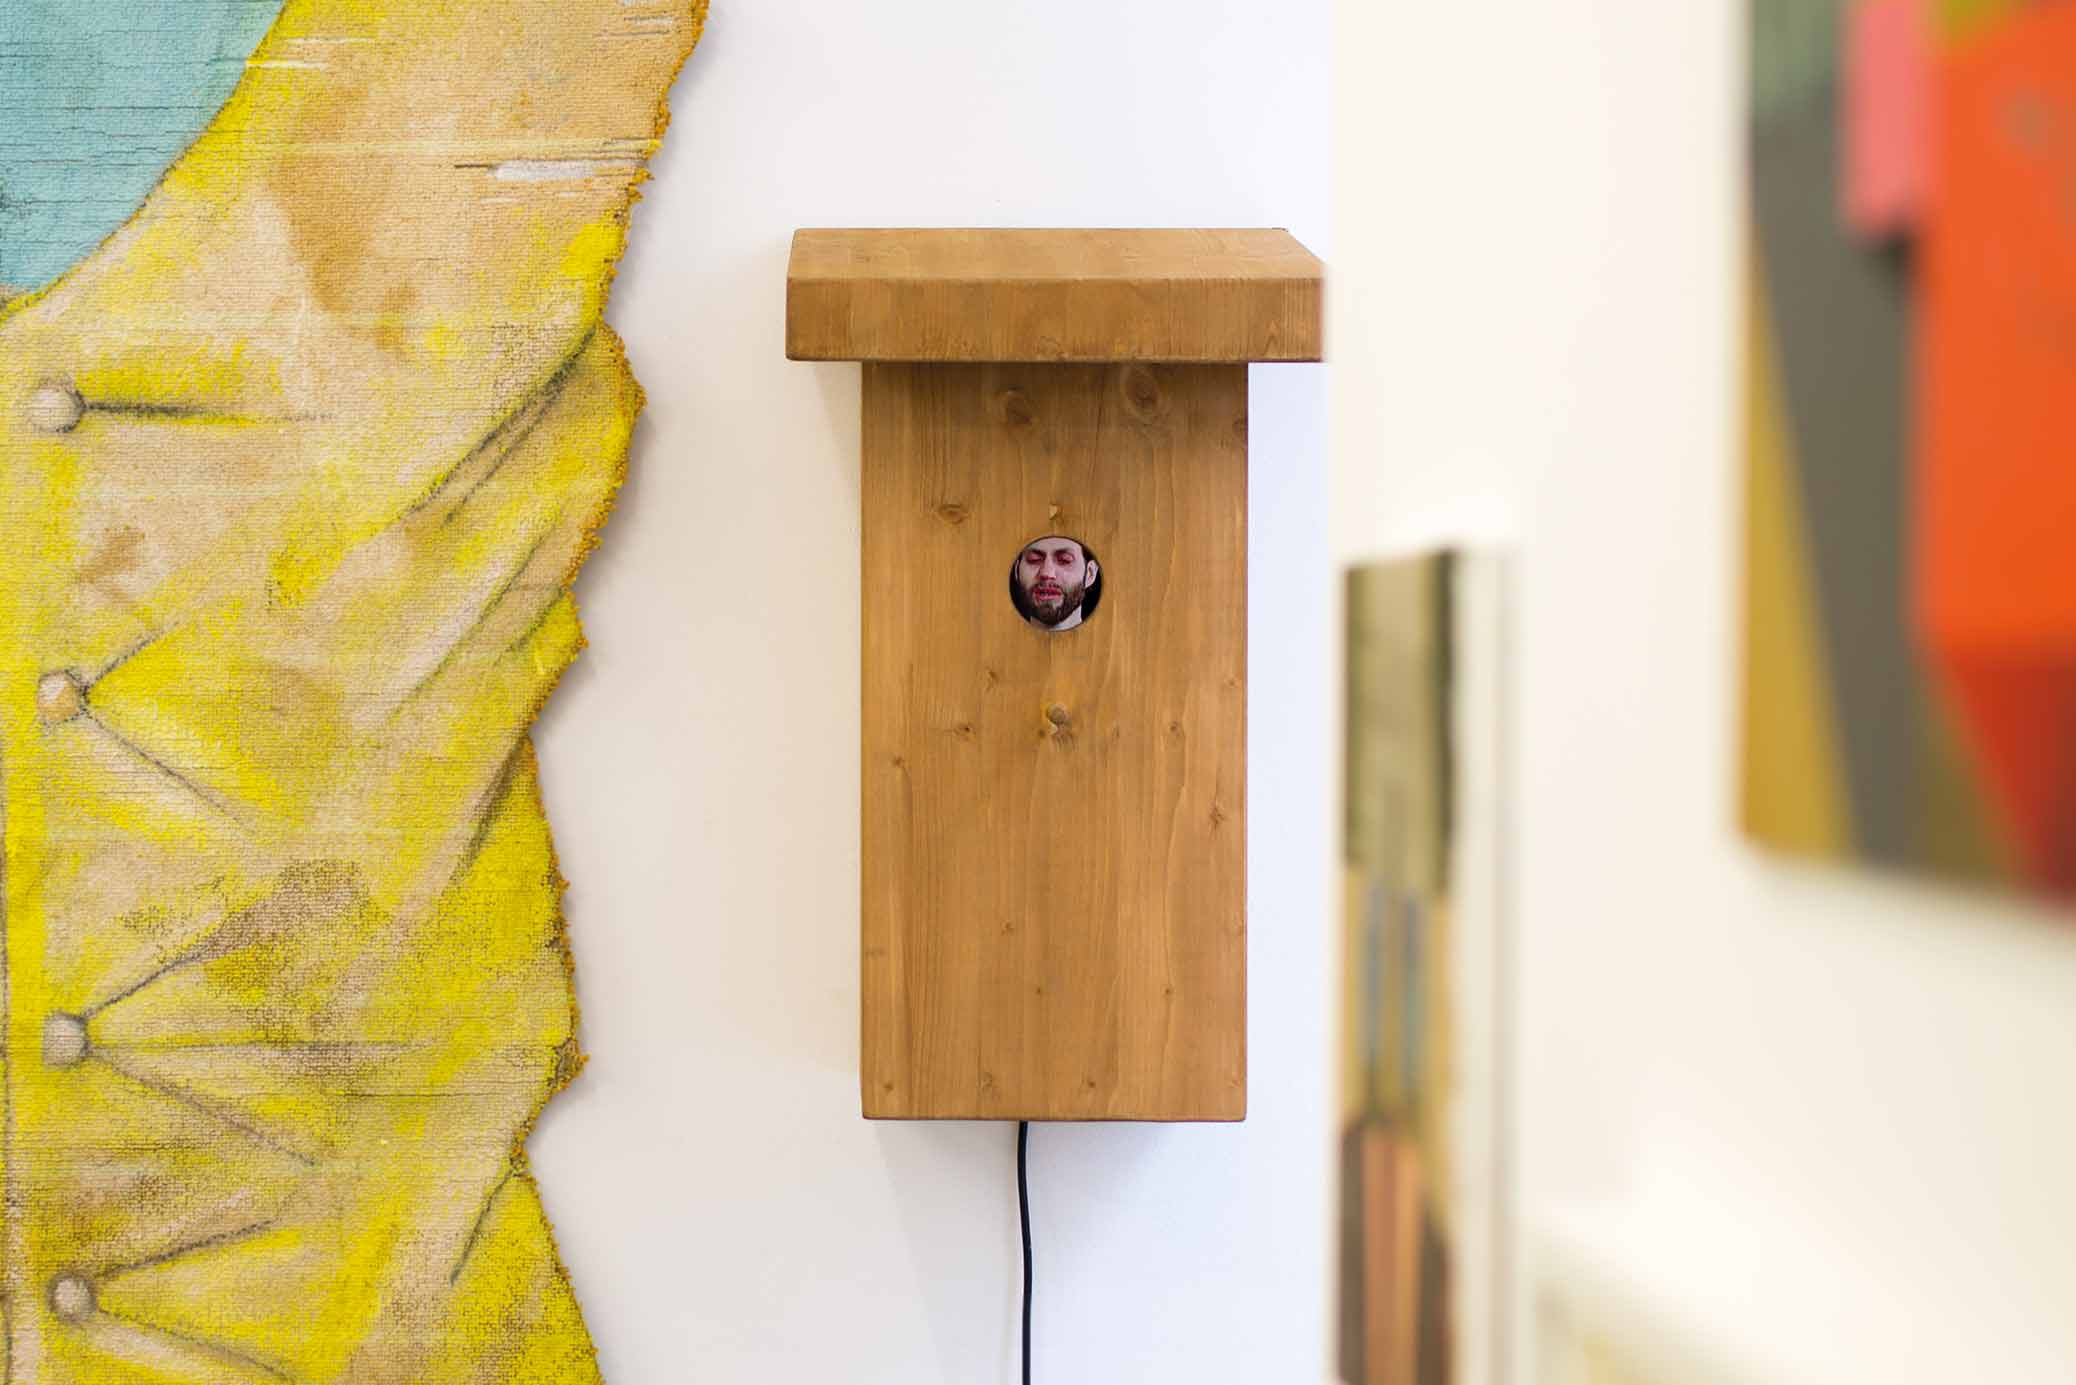 Nesting Box, video sculpture by Björn Perborg with crying man inside.